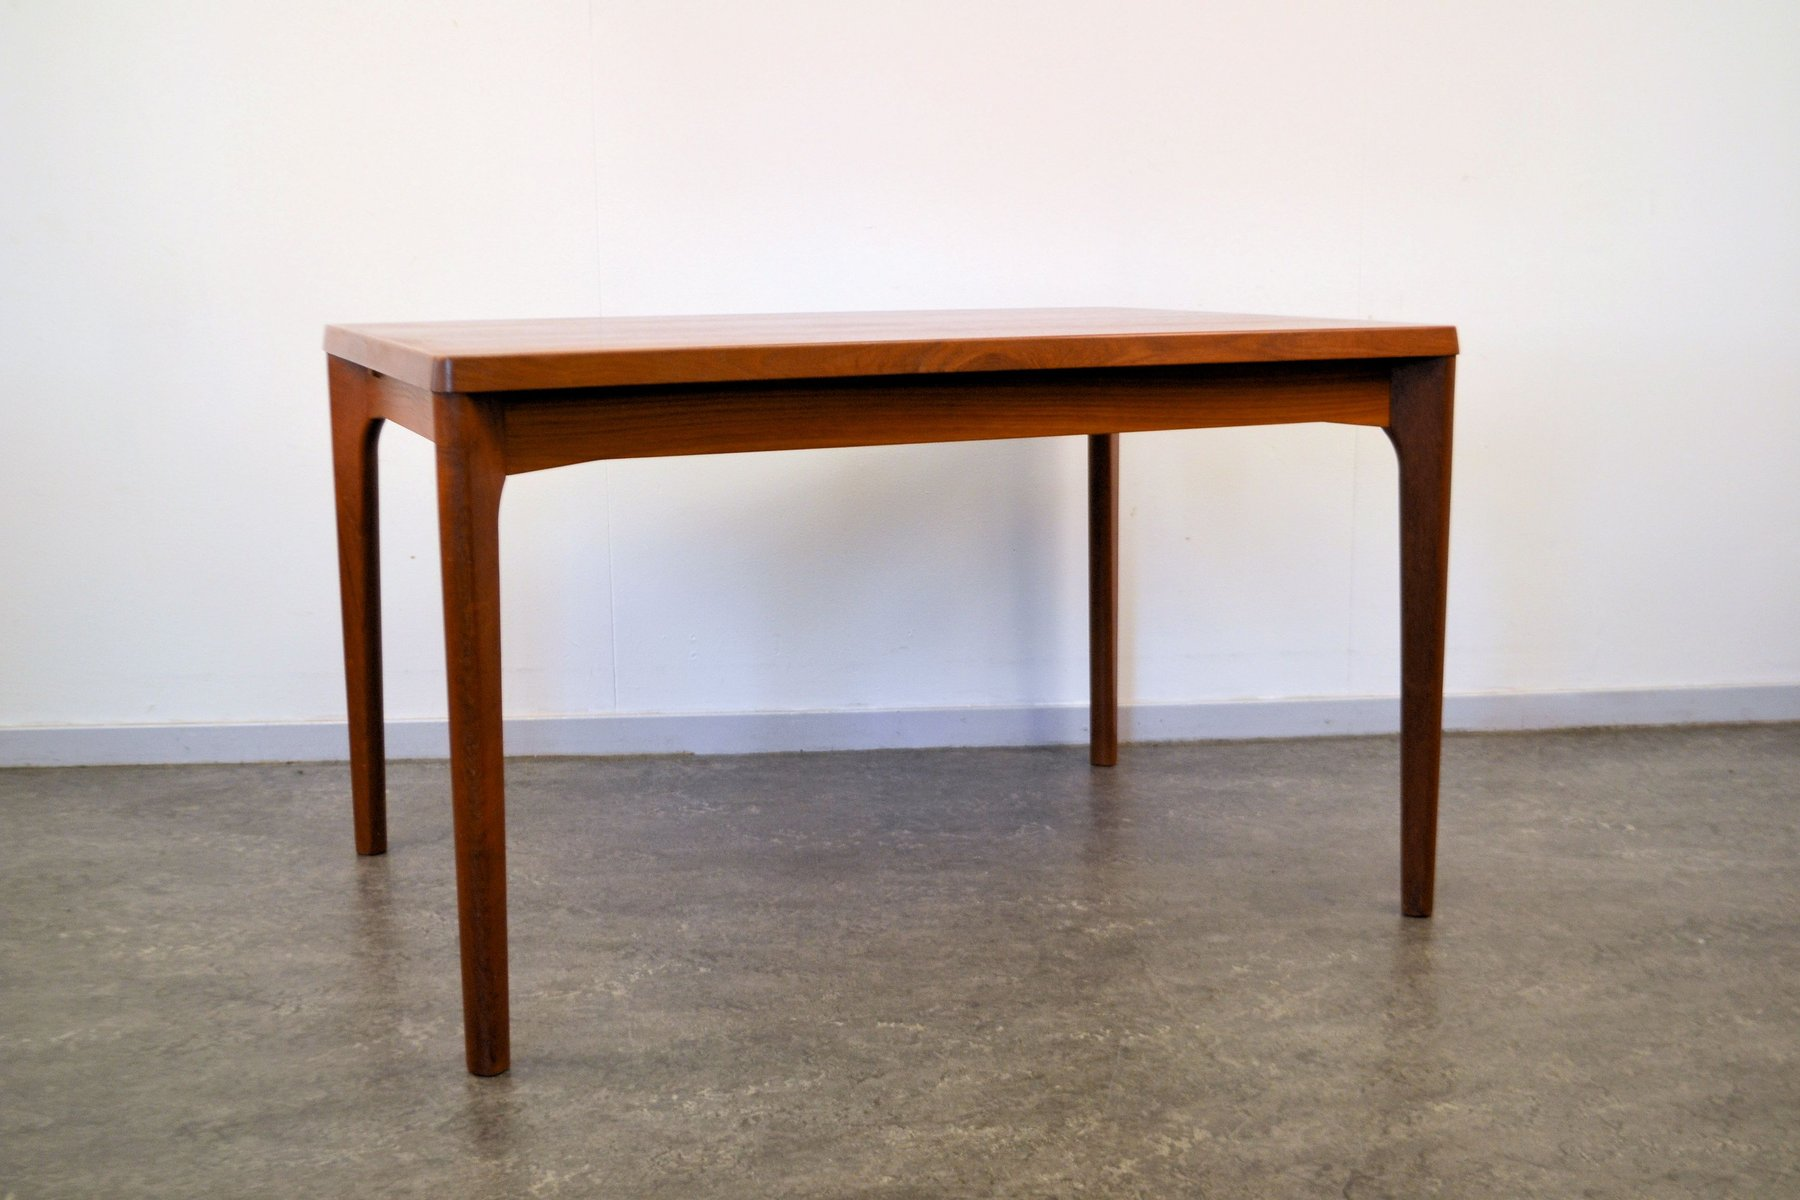 Danish Teak Extendable Dining Table By Henning Kjaernulf For Vejle Stole  Møbelfabrik, 1960s